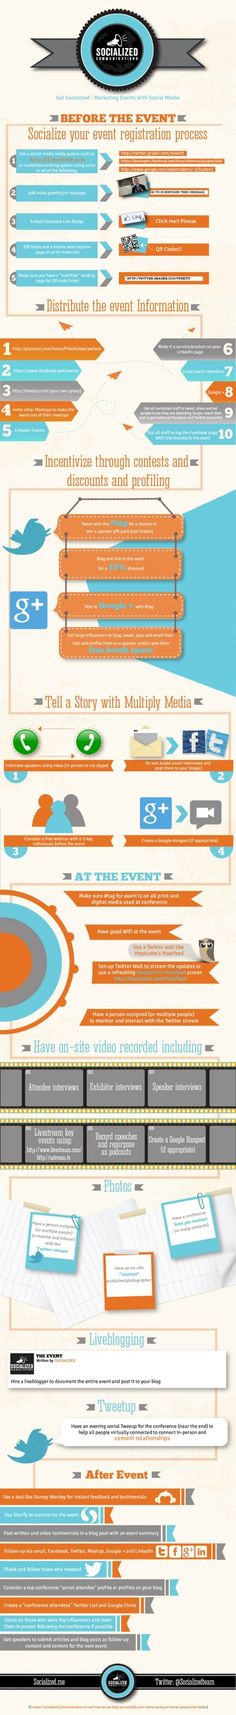 Marketing and Amplifying Your #Events with #SocialMedia